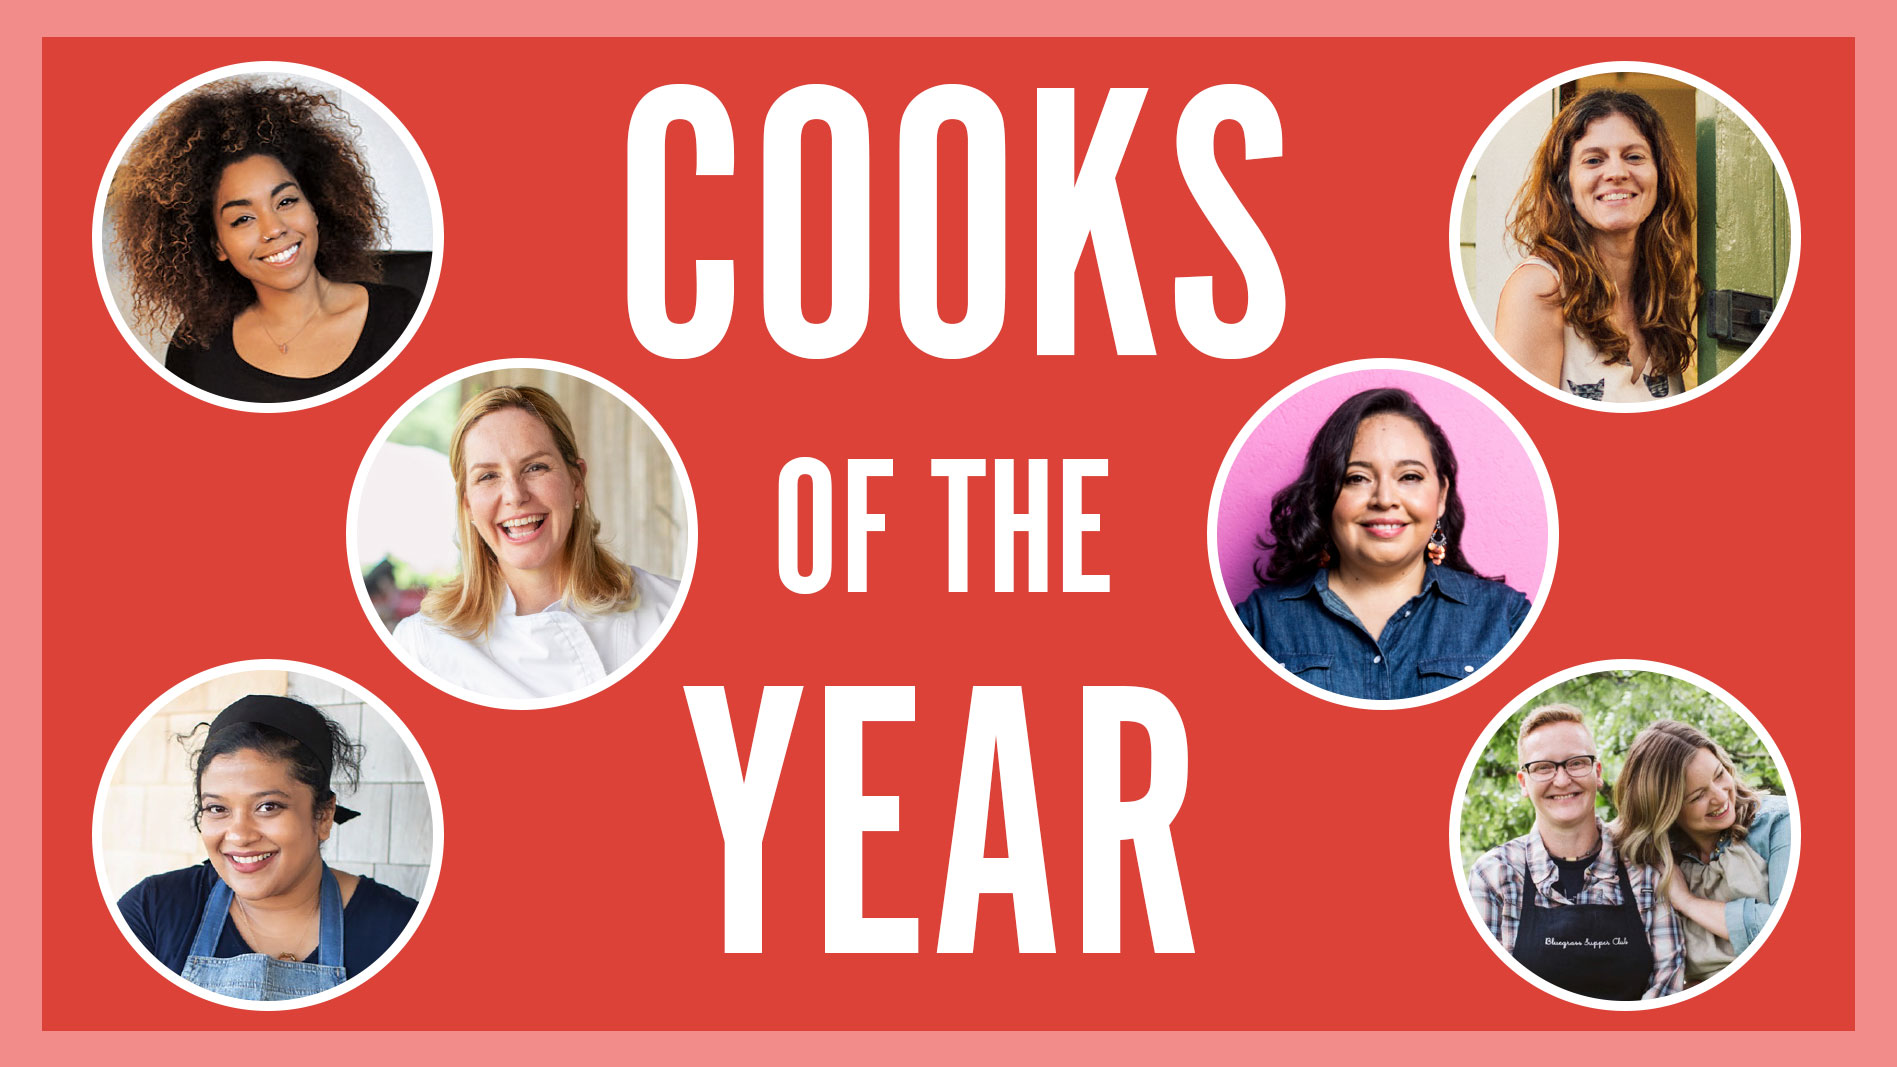 Cooks of the Year 2020